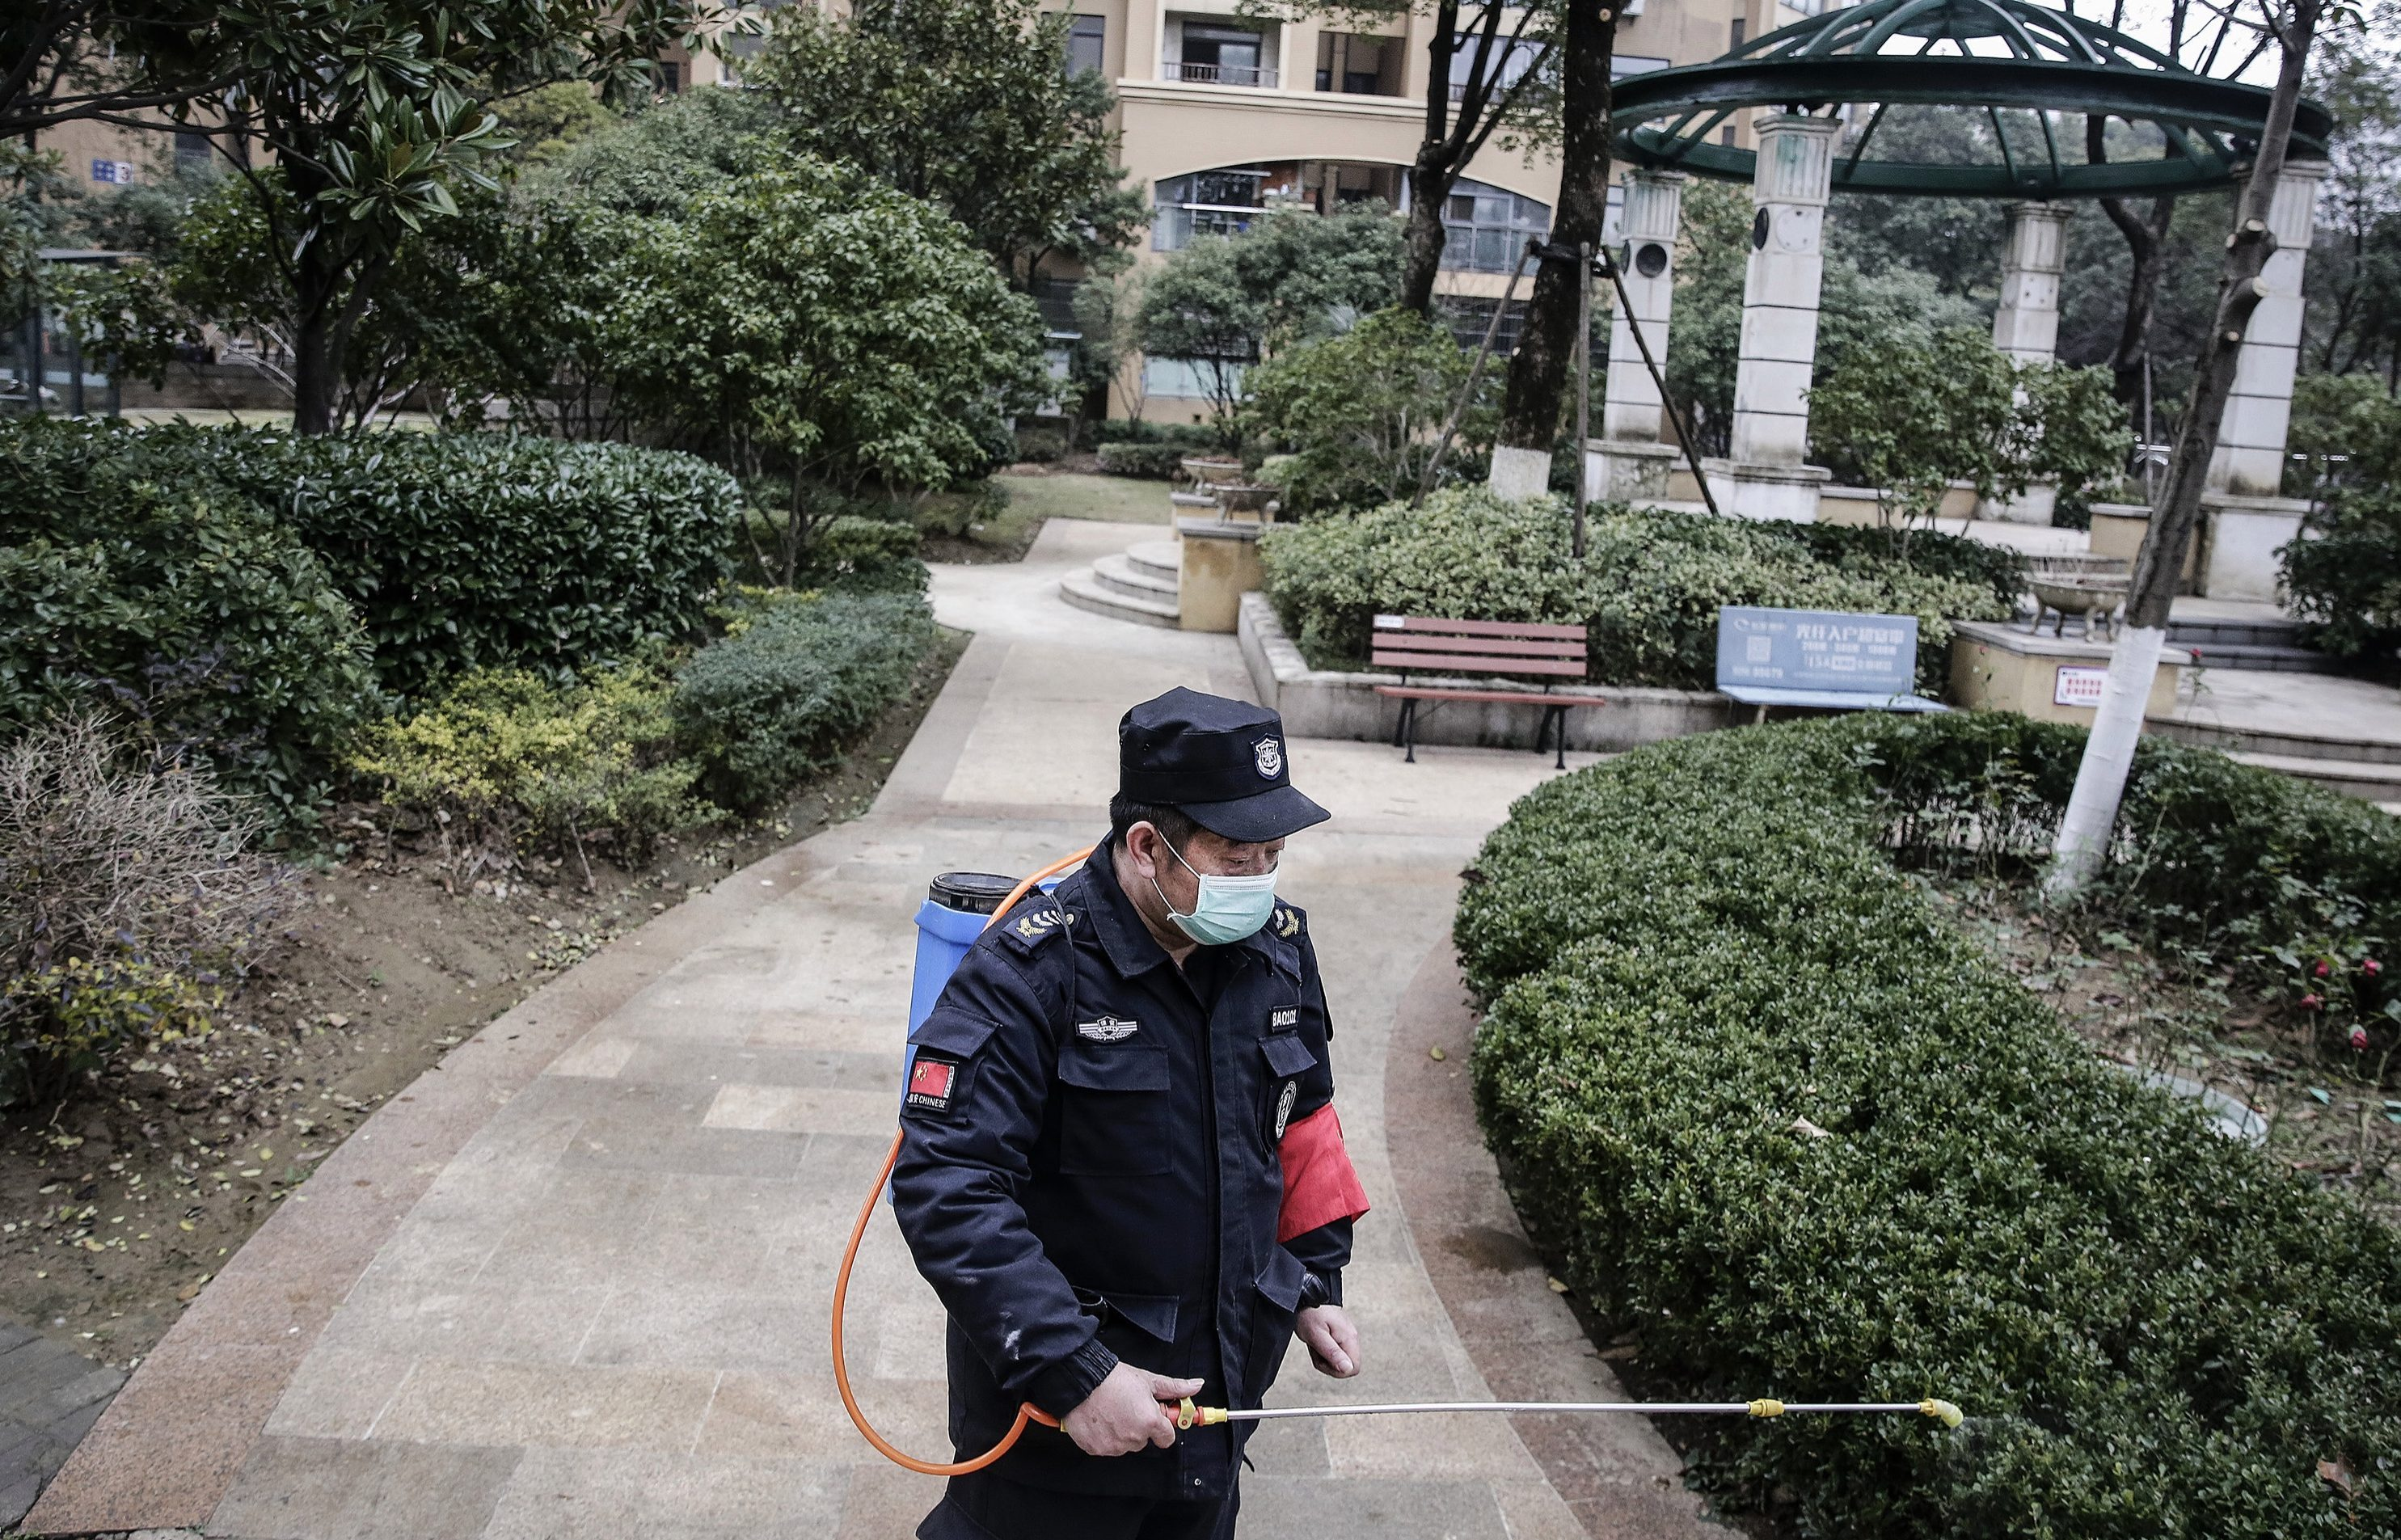 A man is using alcohol to disinfect a community in Wuhan after the city has been placed on lockdown